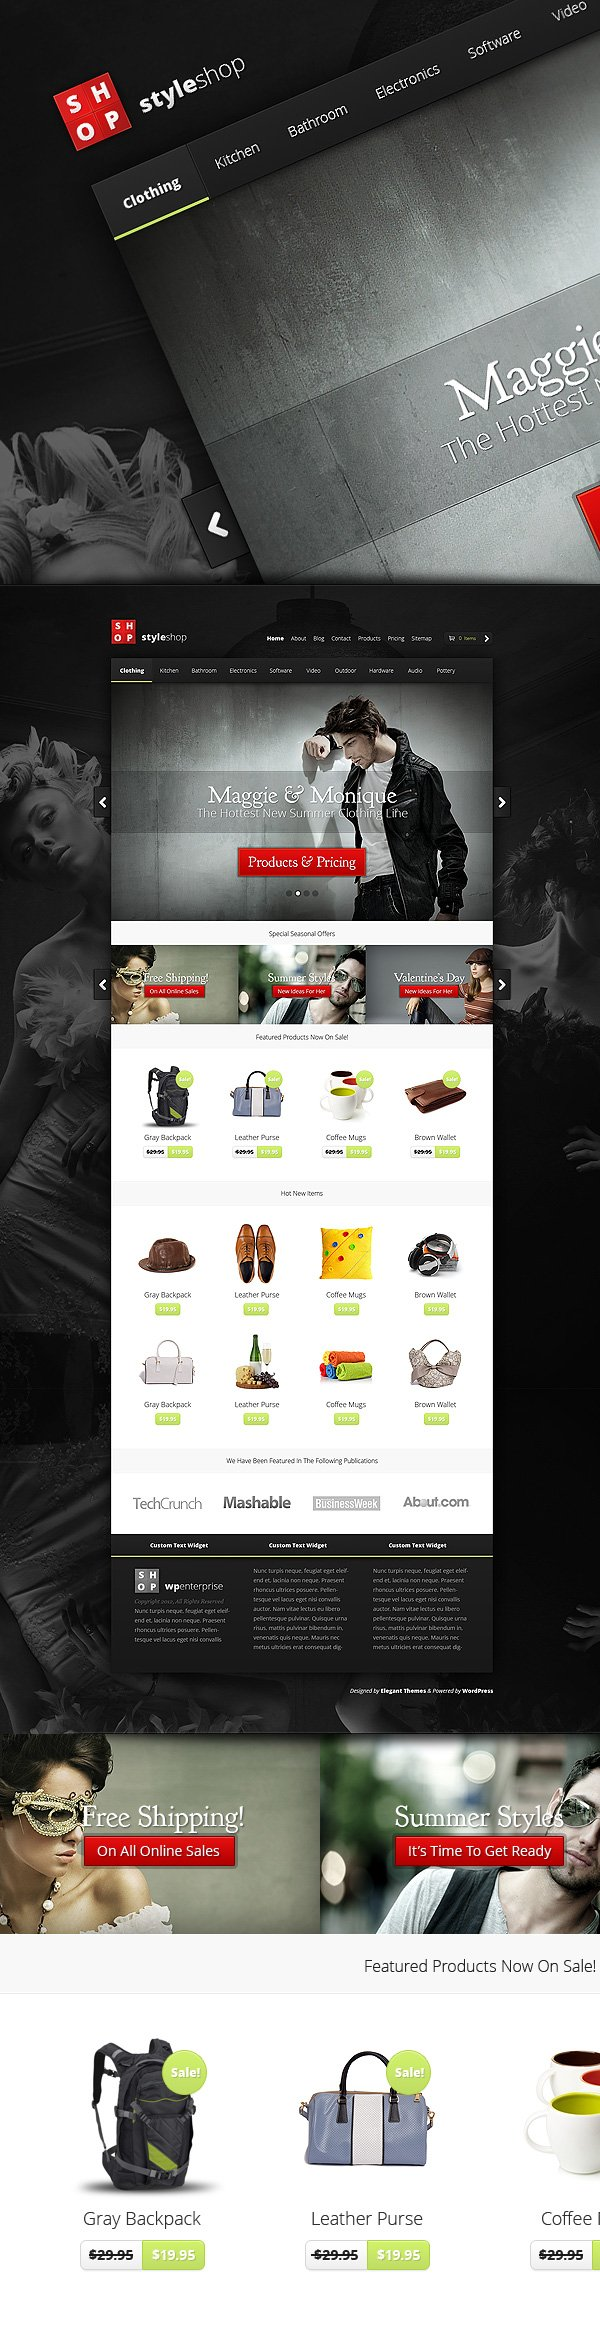 StyleShop, Our New eCommerce Theme